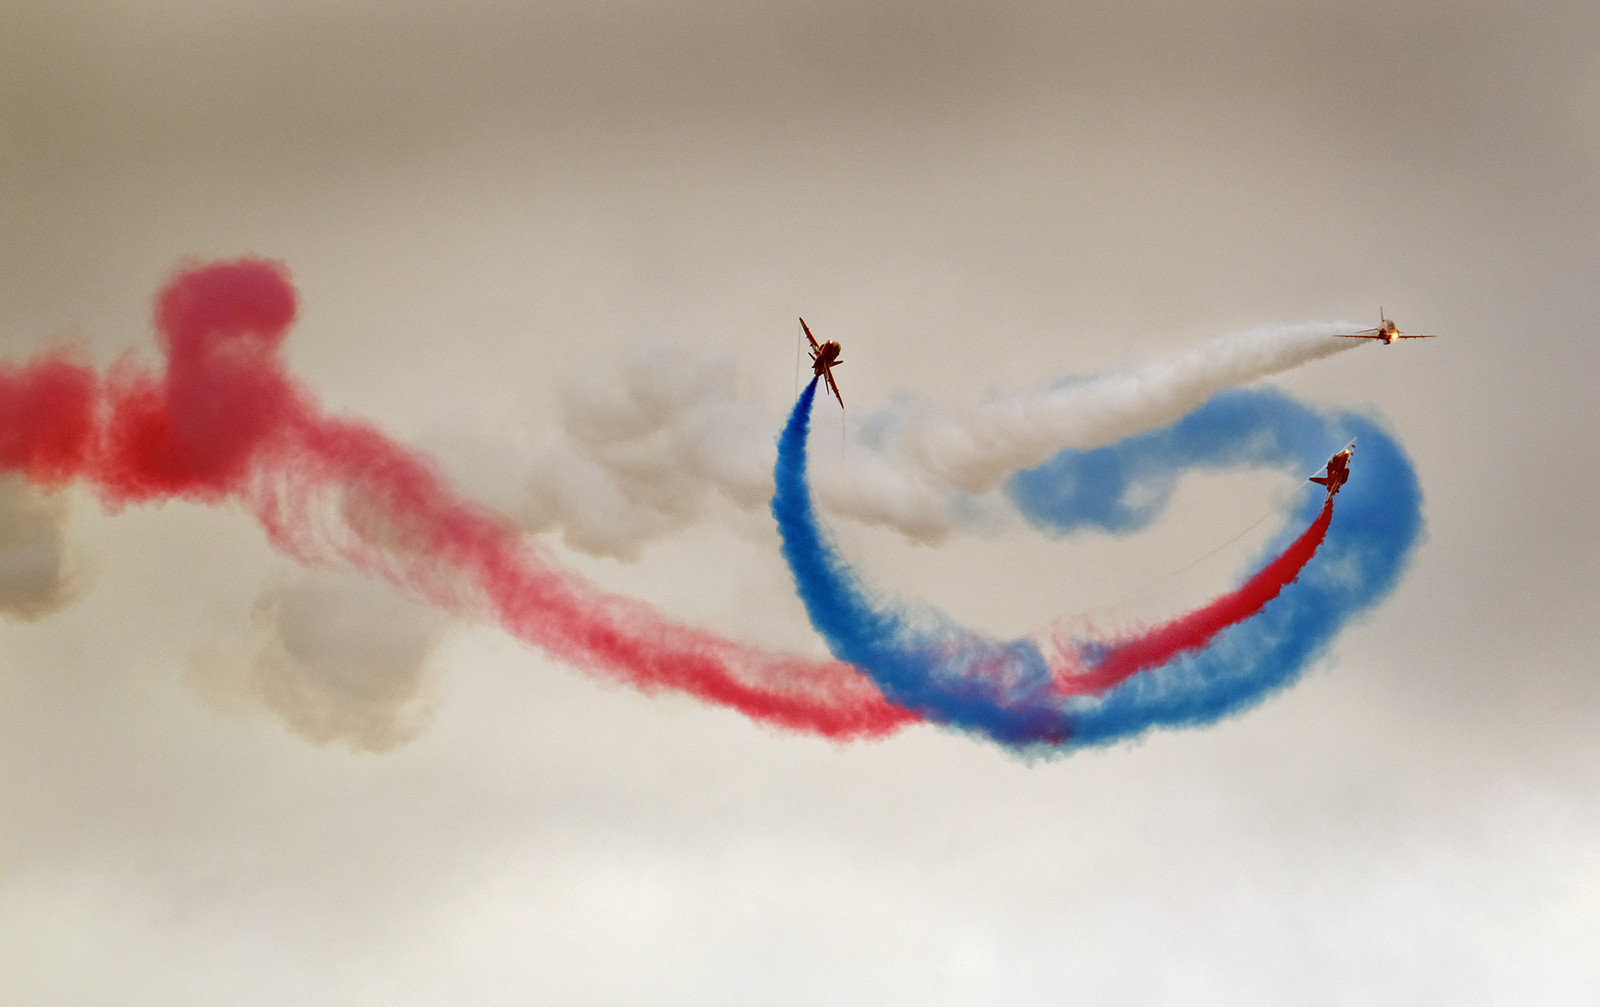 The Red Arrows in action.